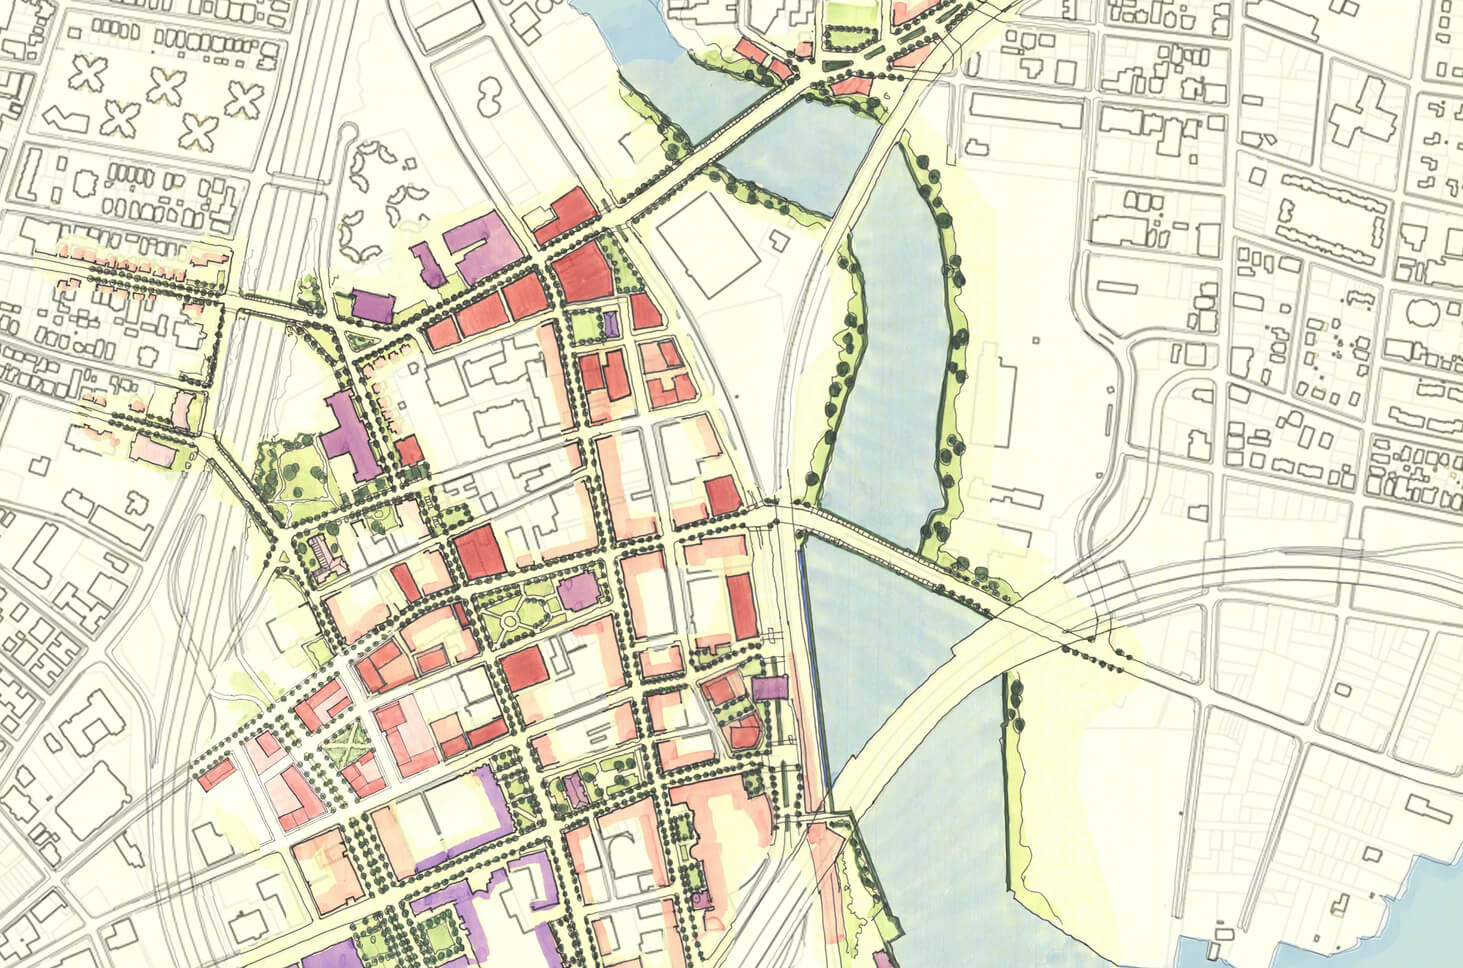 Bridgeport Illustrative Plan Overlay_cropped